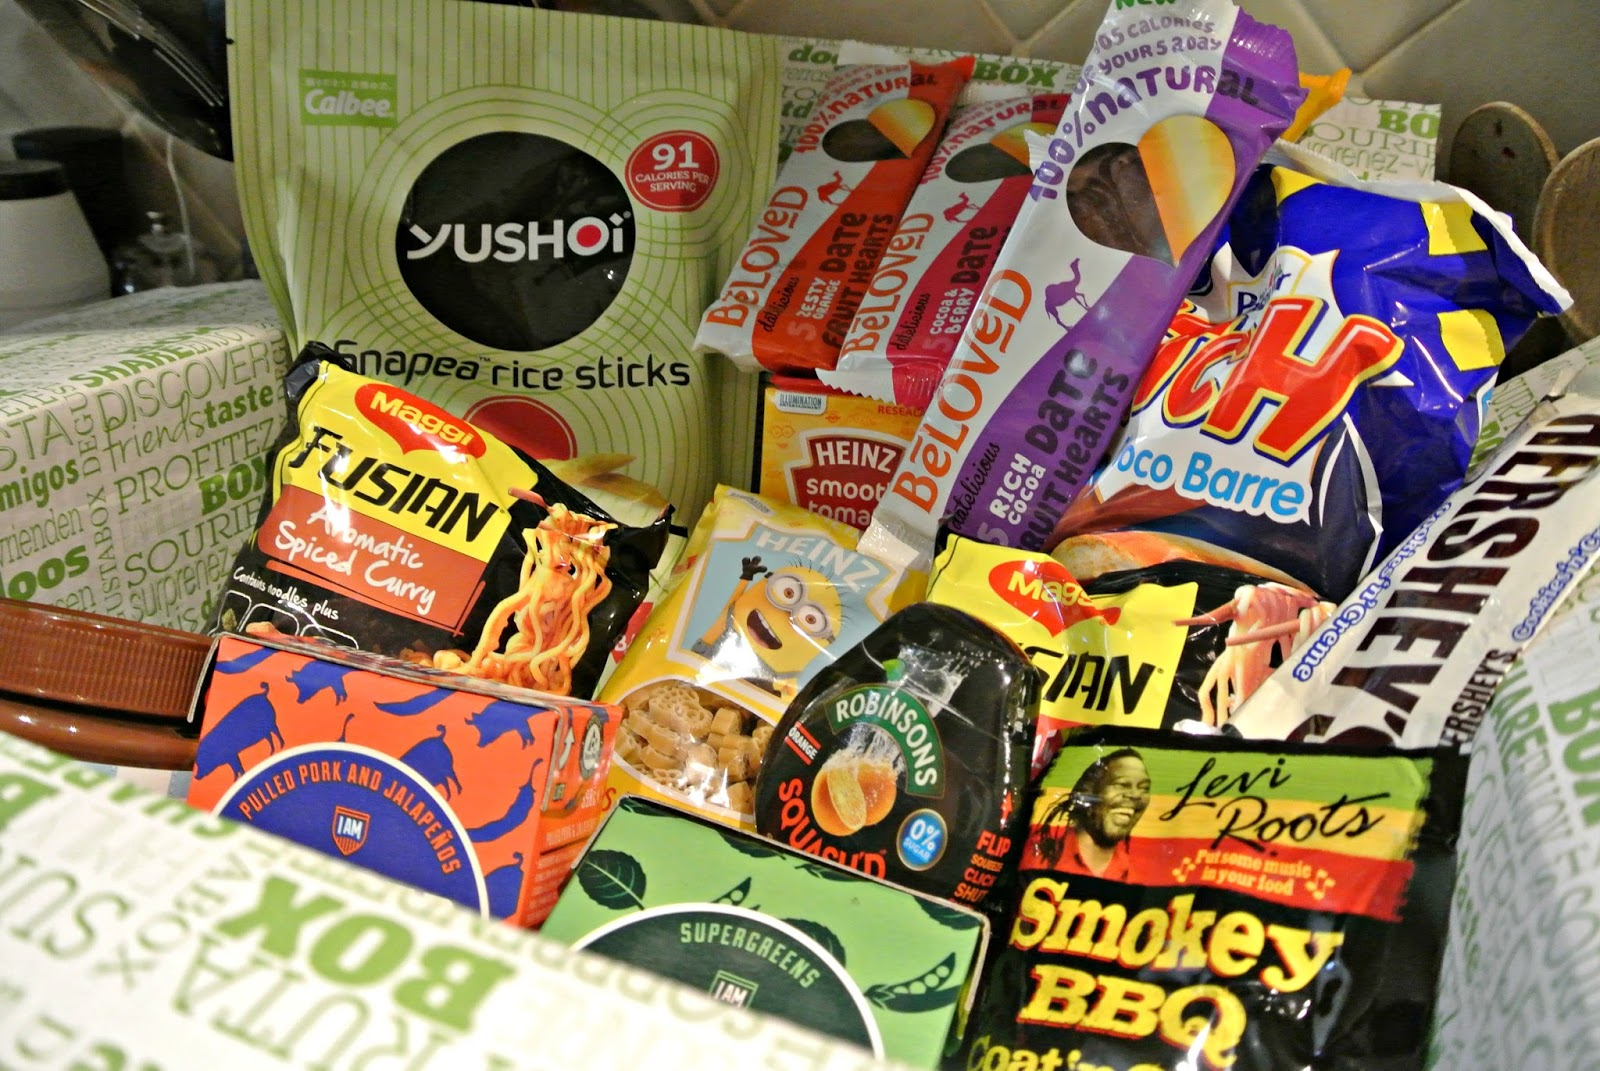 Degustabox October 2016 review food subscription box plus discount code image